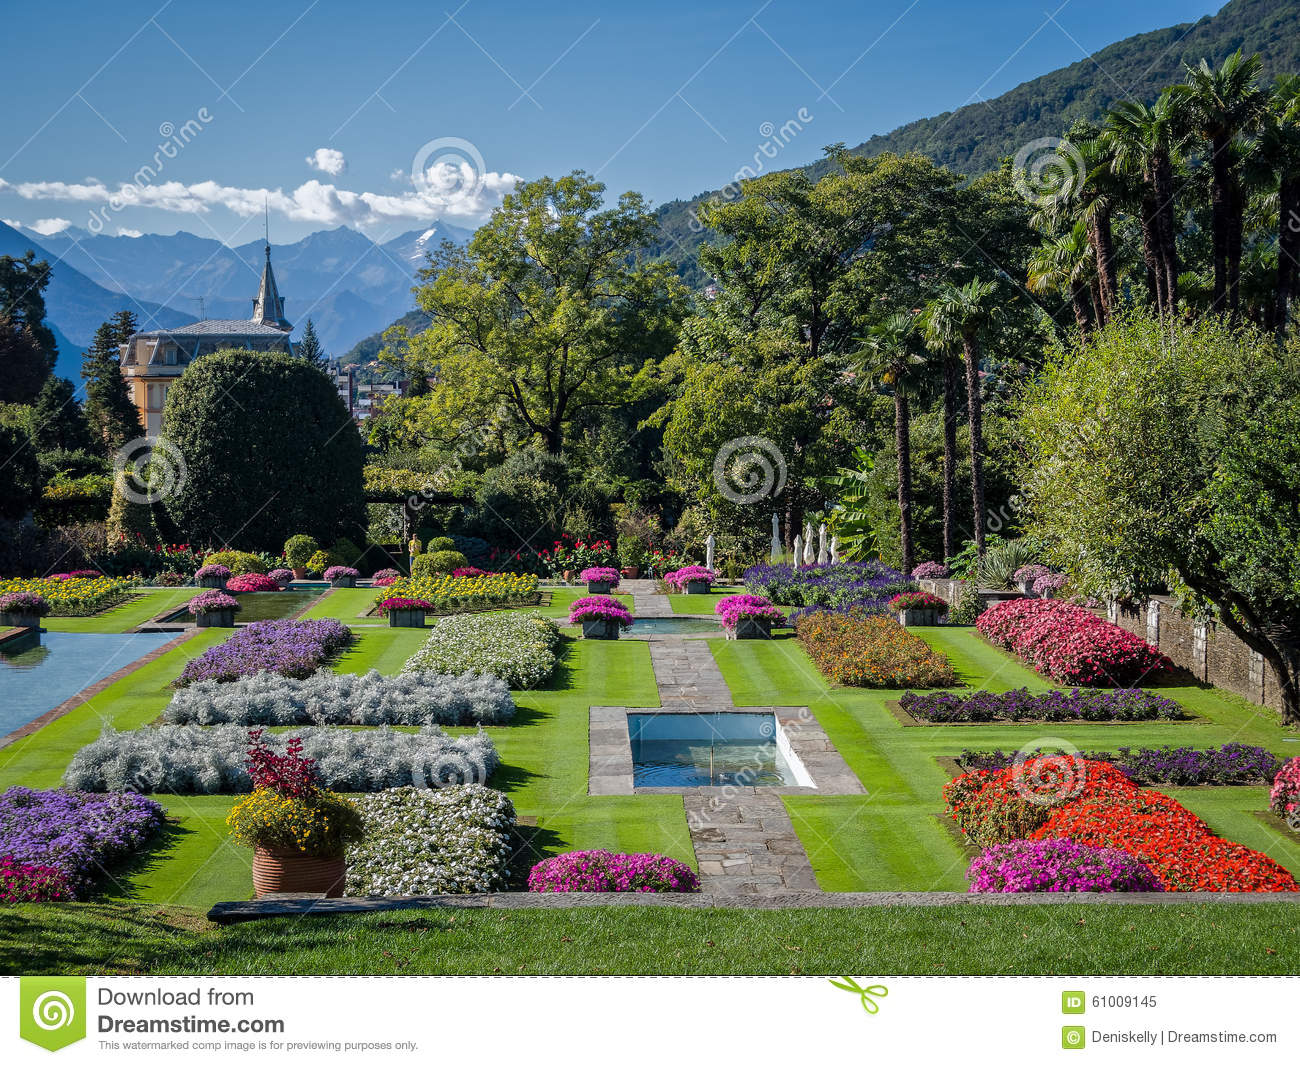 Botanical gardens villa taranto italy stock image image for Gardens and villa